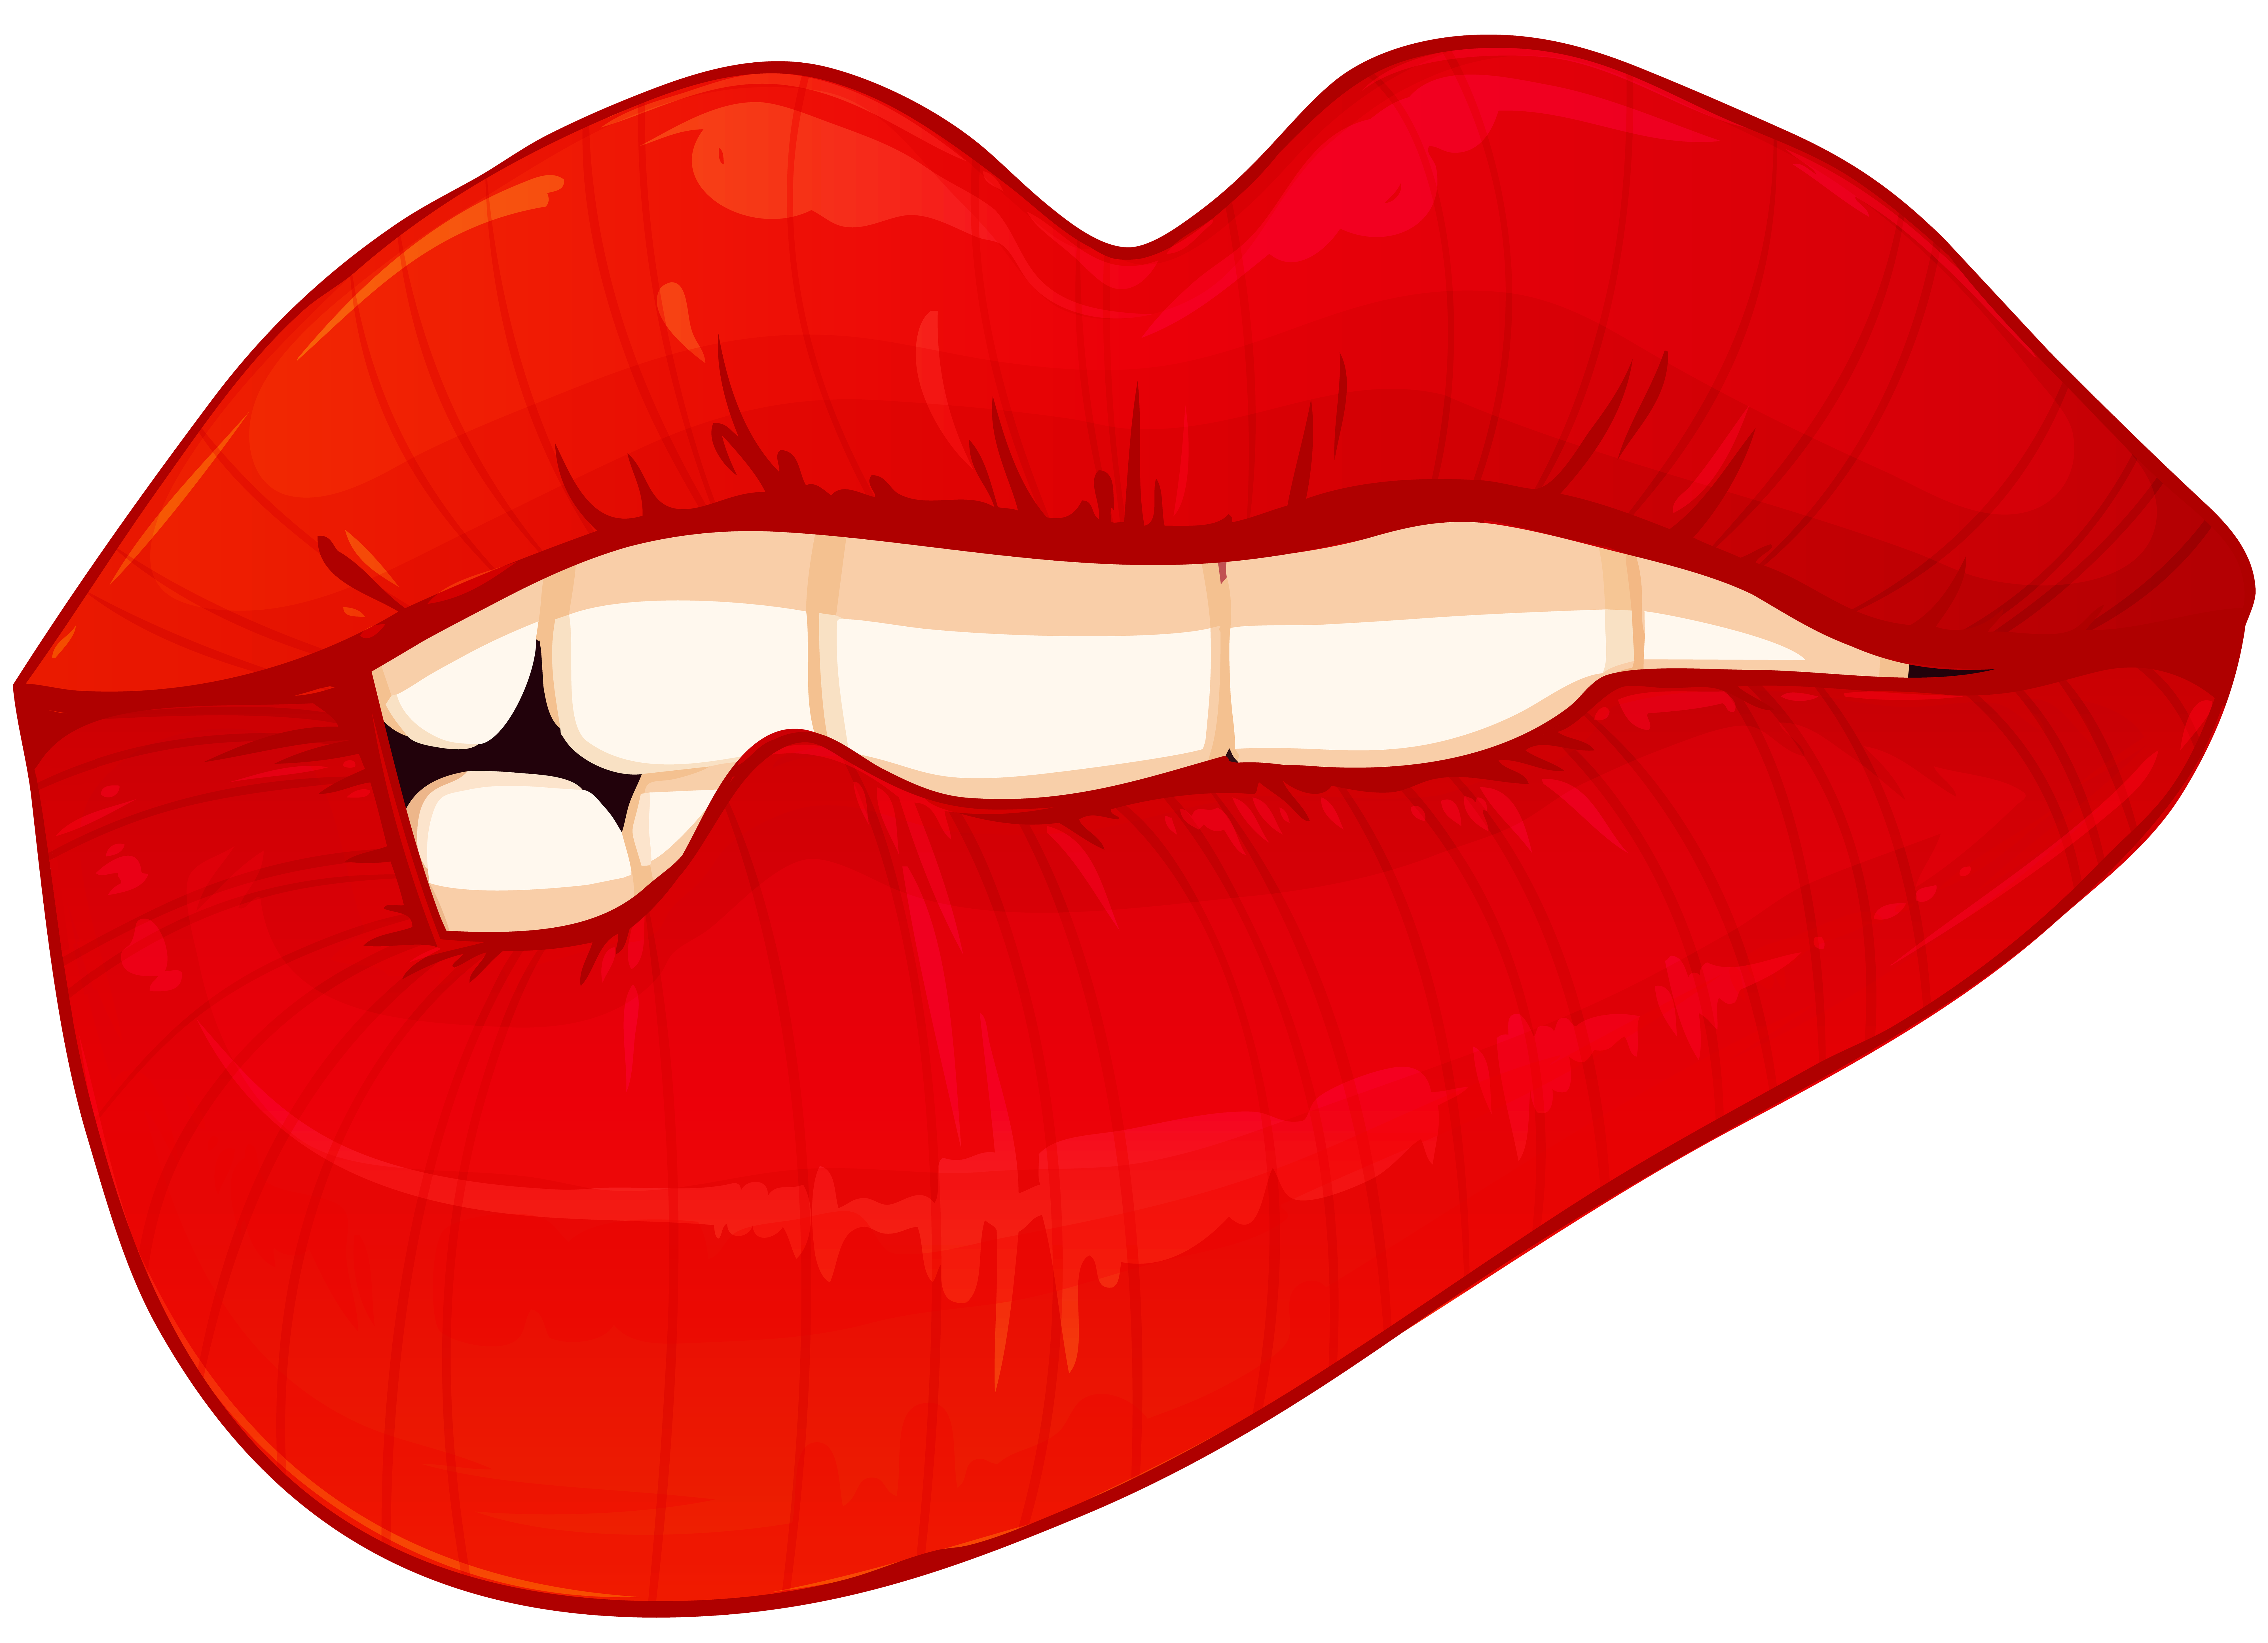 Biting lips png clip. Glitter clipart gold abstract picture royalty free